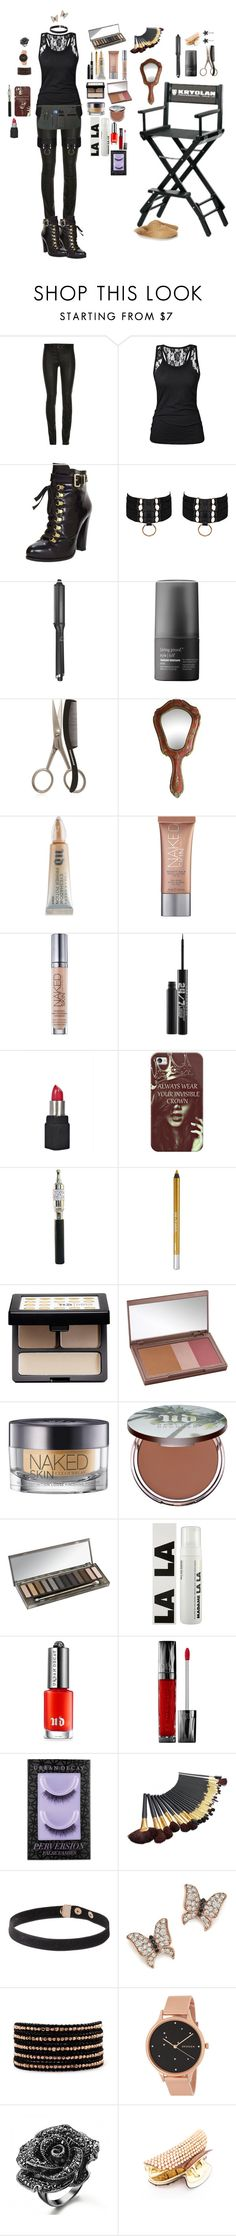 """Touch-up Time"" by karlielove2party ❤ liked on Polyvore featuring Fendi, Bordelle, GHD, Living Proof, Tweezerman, Urban Decay, Boohoo, Casetify, Bloomingdale's and Chan Luu"